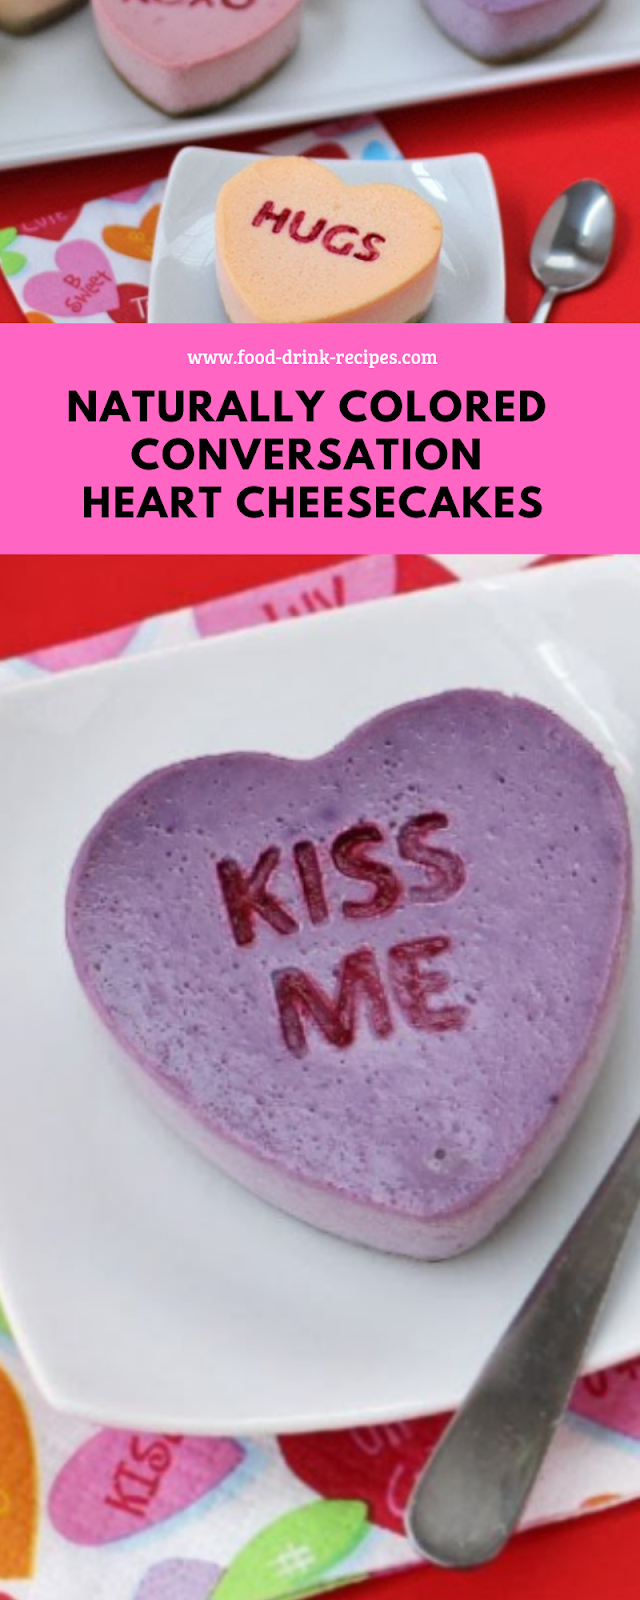 Naturally Colored Conversation Heart Cheesecakes